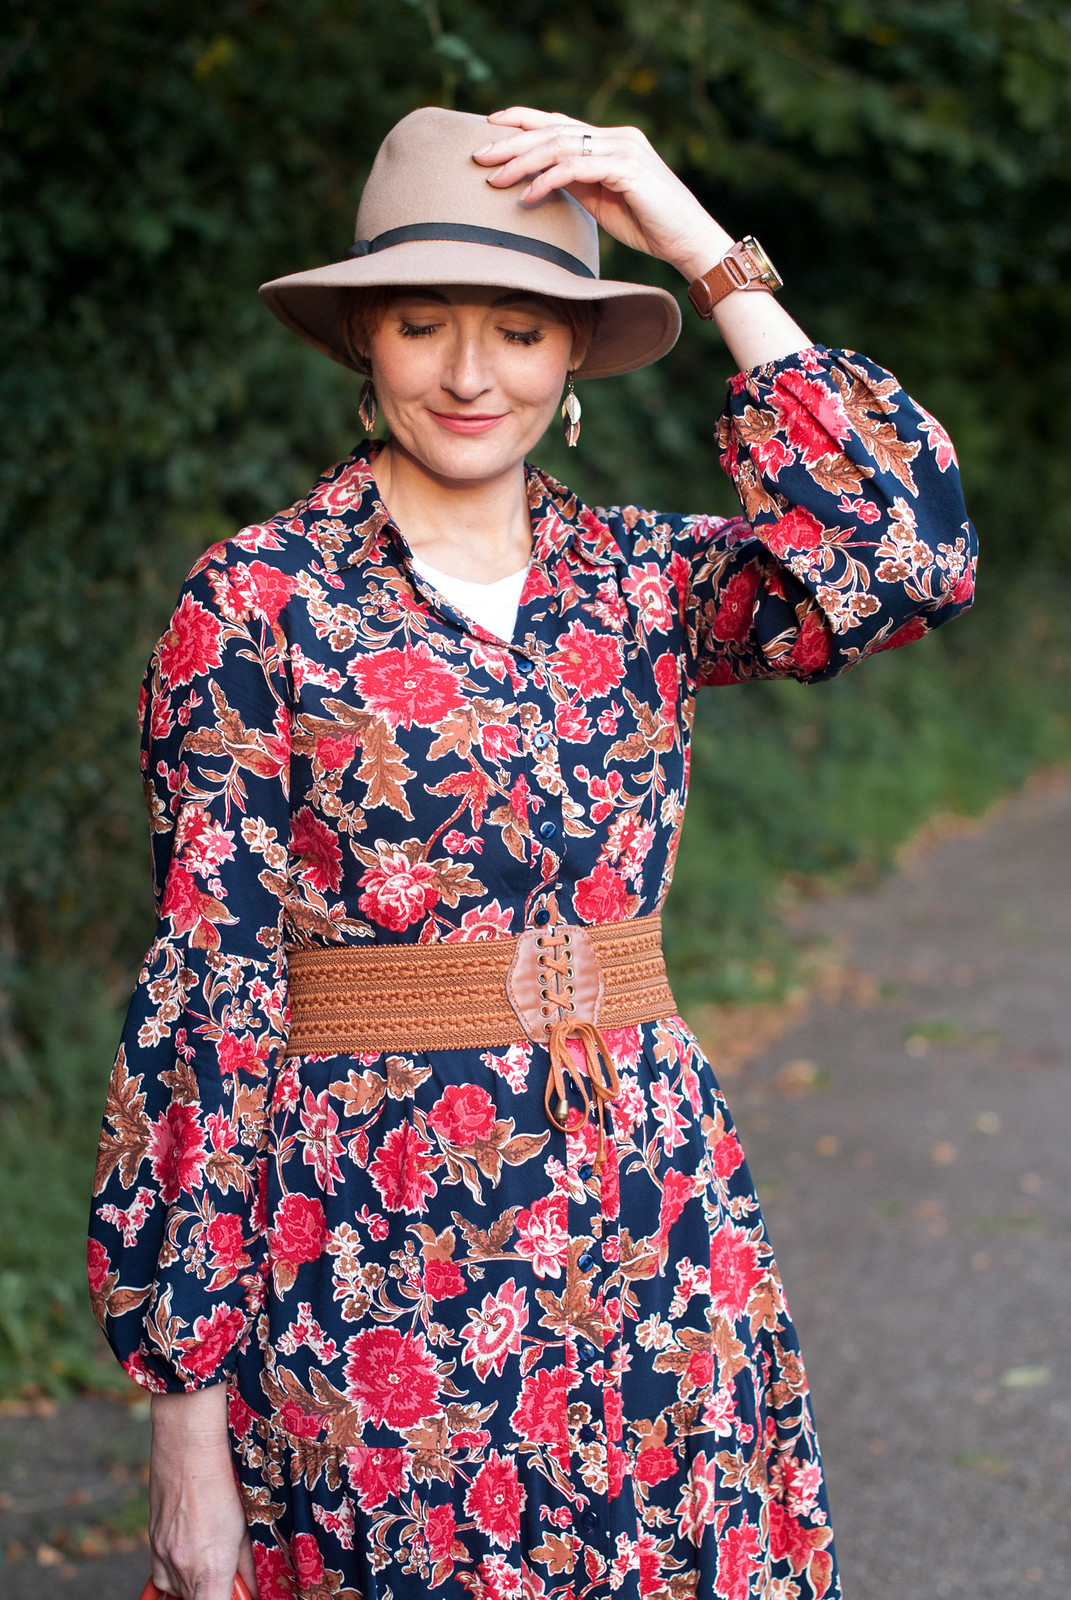 Romantic, Ralph Lauren-inspired 70s style autumn/fall outfit: Floral maxi dress \ tan belt and boots \ camel fedora \ orange leather tote bag | Not Dressed As Lamb, over 40 style